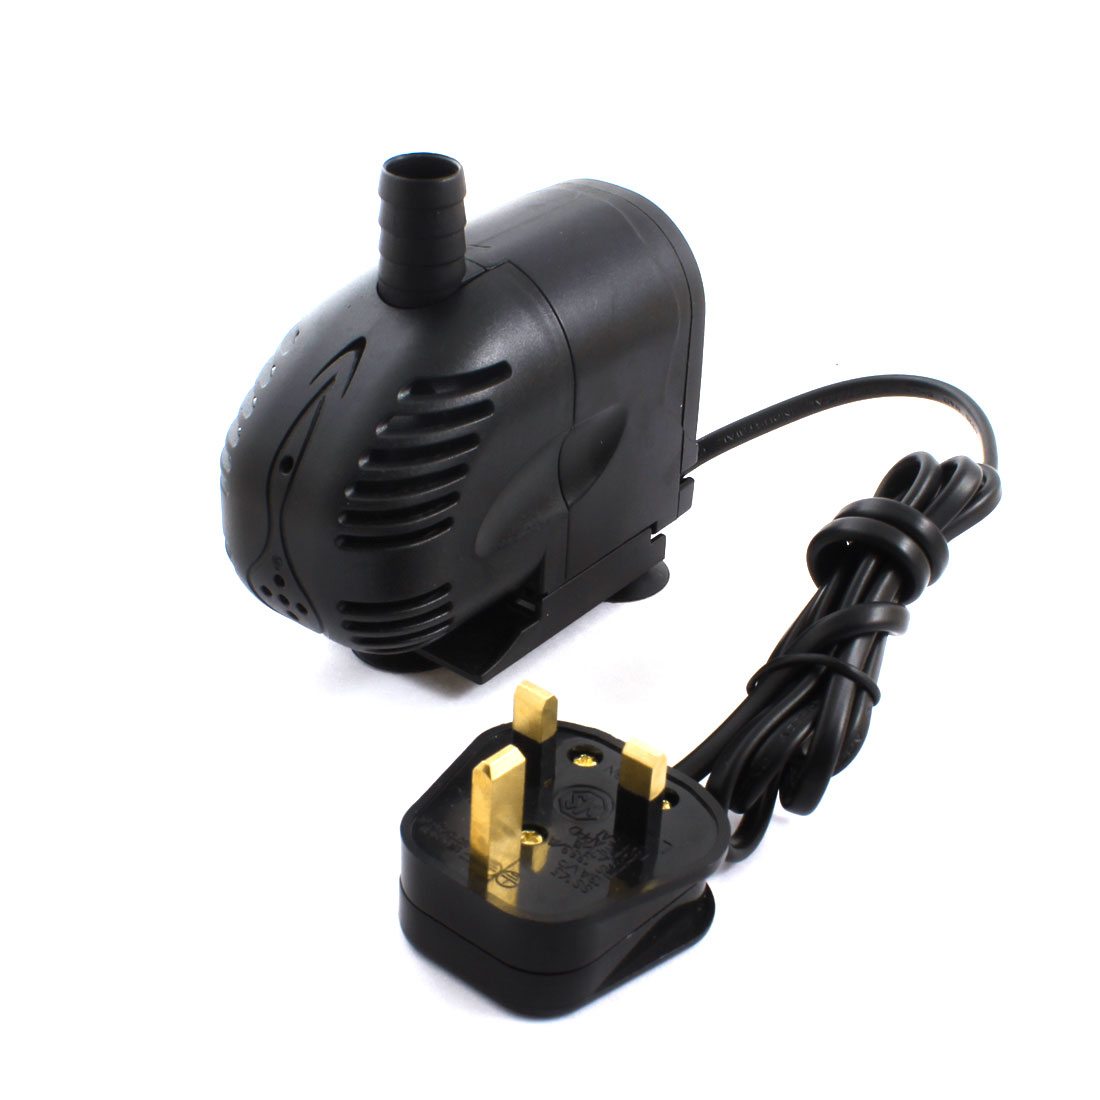 UK Plug AC 220-240V 800L/H Aquarium Internal Submersible Pump Filter